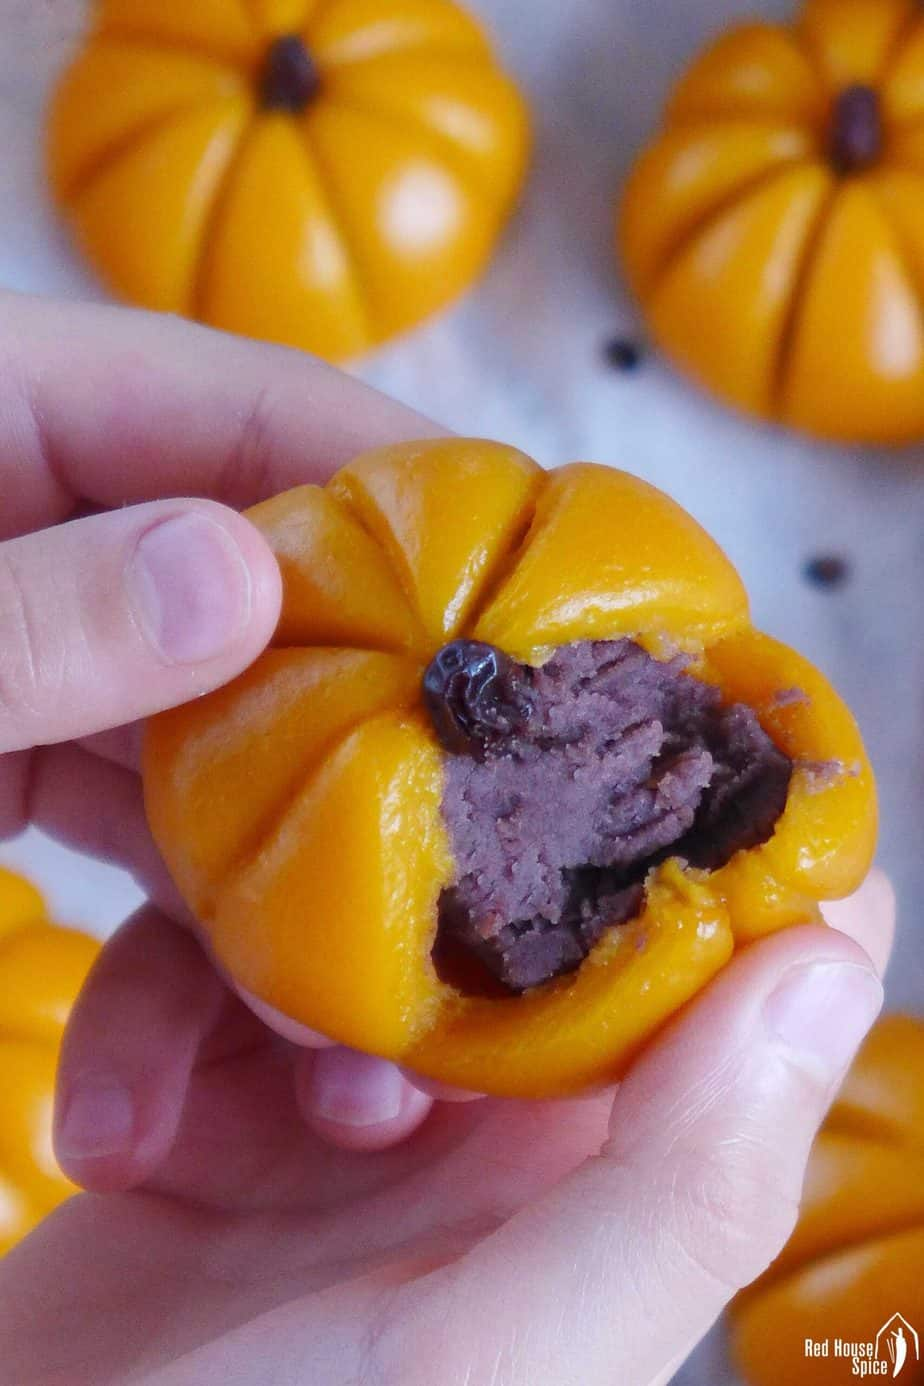 A sticky rice pumpkin cake torn open showing its red bean paste filling.